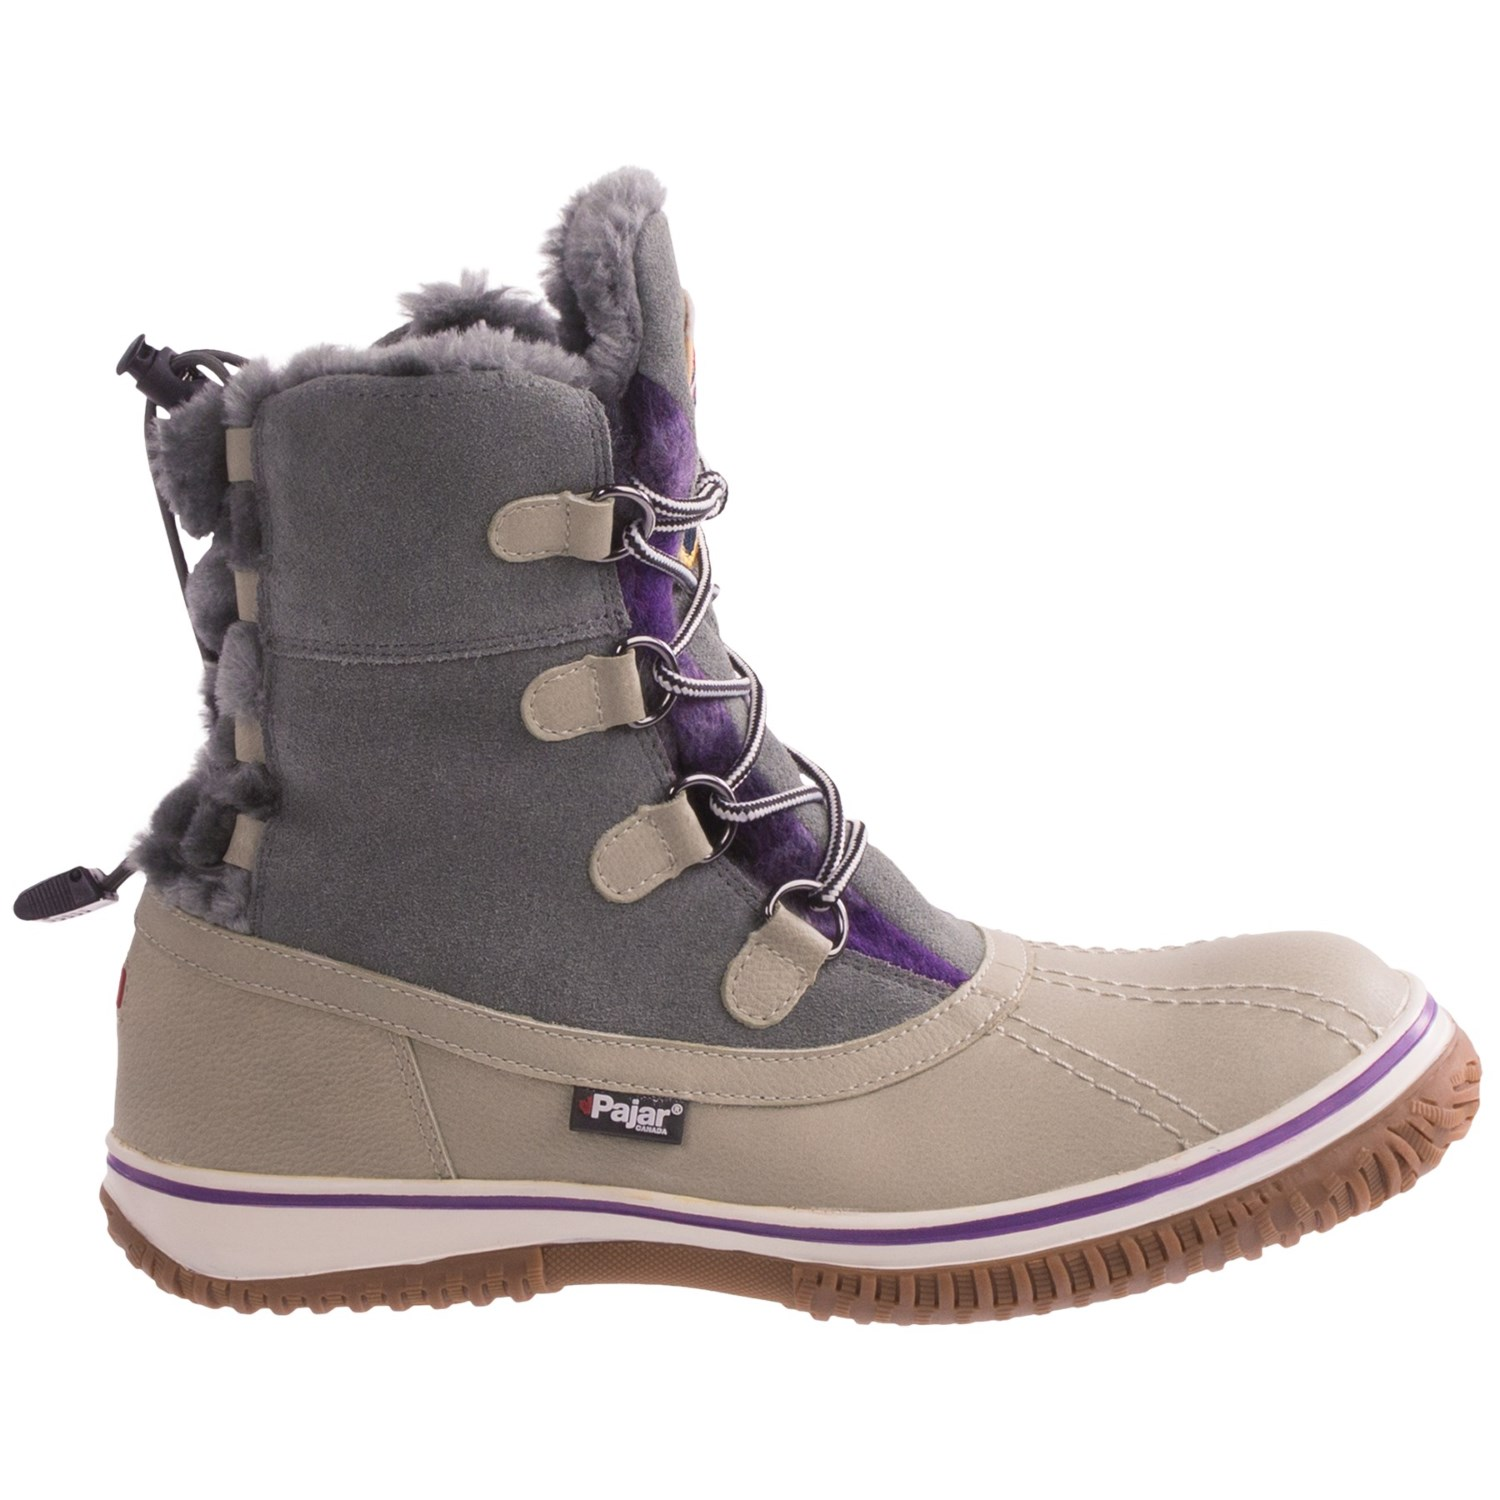 Excellent Aliexpress.com  Buy Women Boots 2016 New Arrival Women Winter Boots Warm Snow Boots Fashion ...